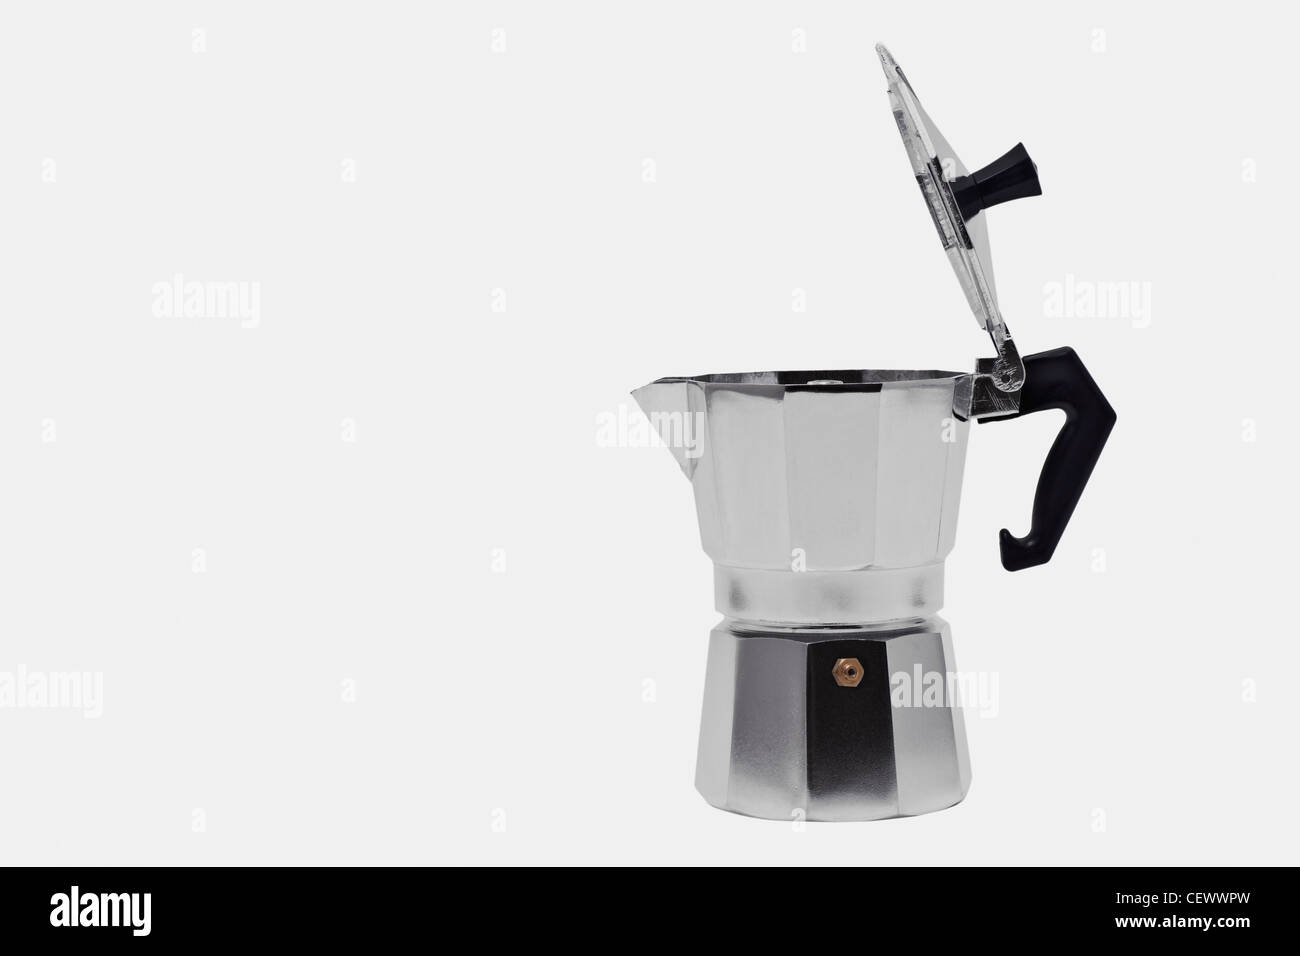 Detailansicht einer einfachen Kaffeemaschine, Perkolator | Detail photo of a simple coffee maker, percolator - Stock Image